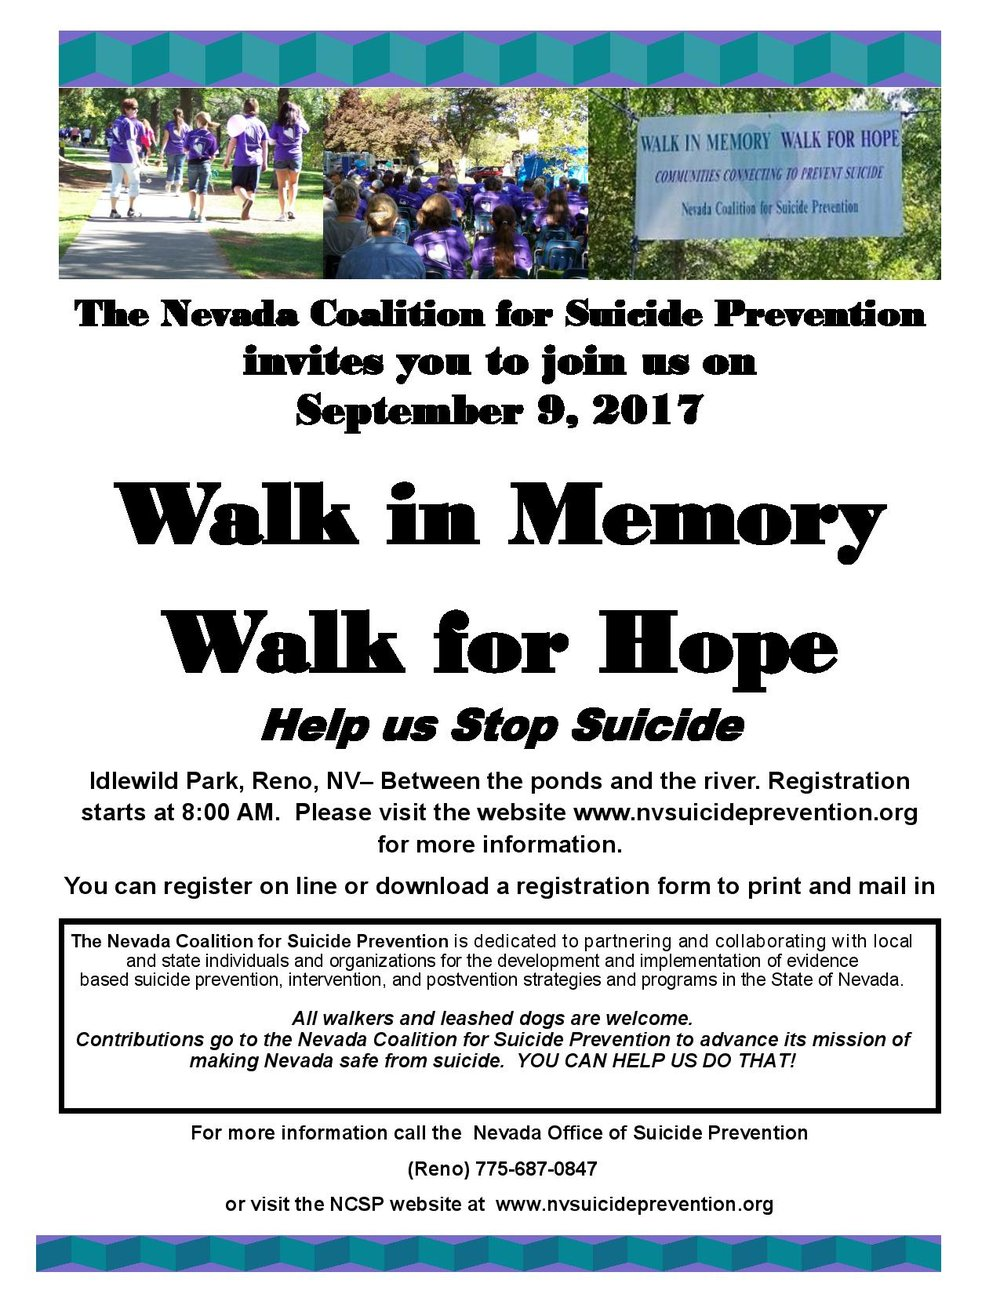 Reno WALK flyer 2017-page-001.jpg